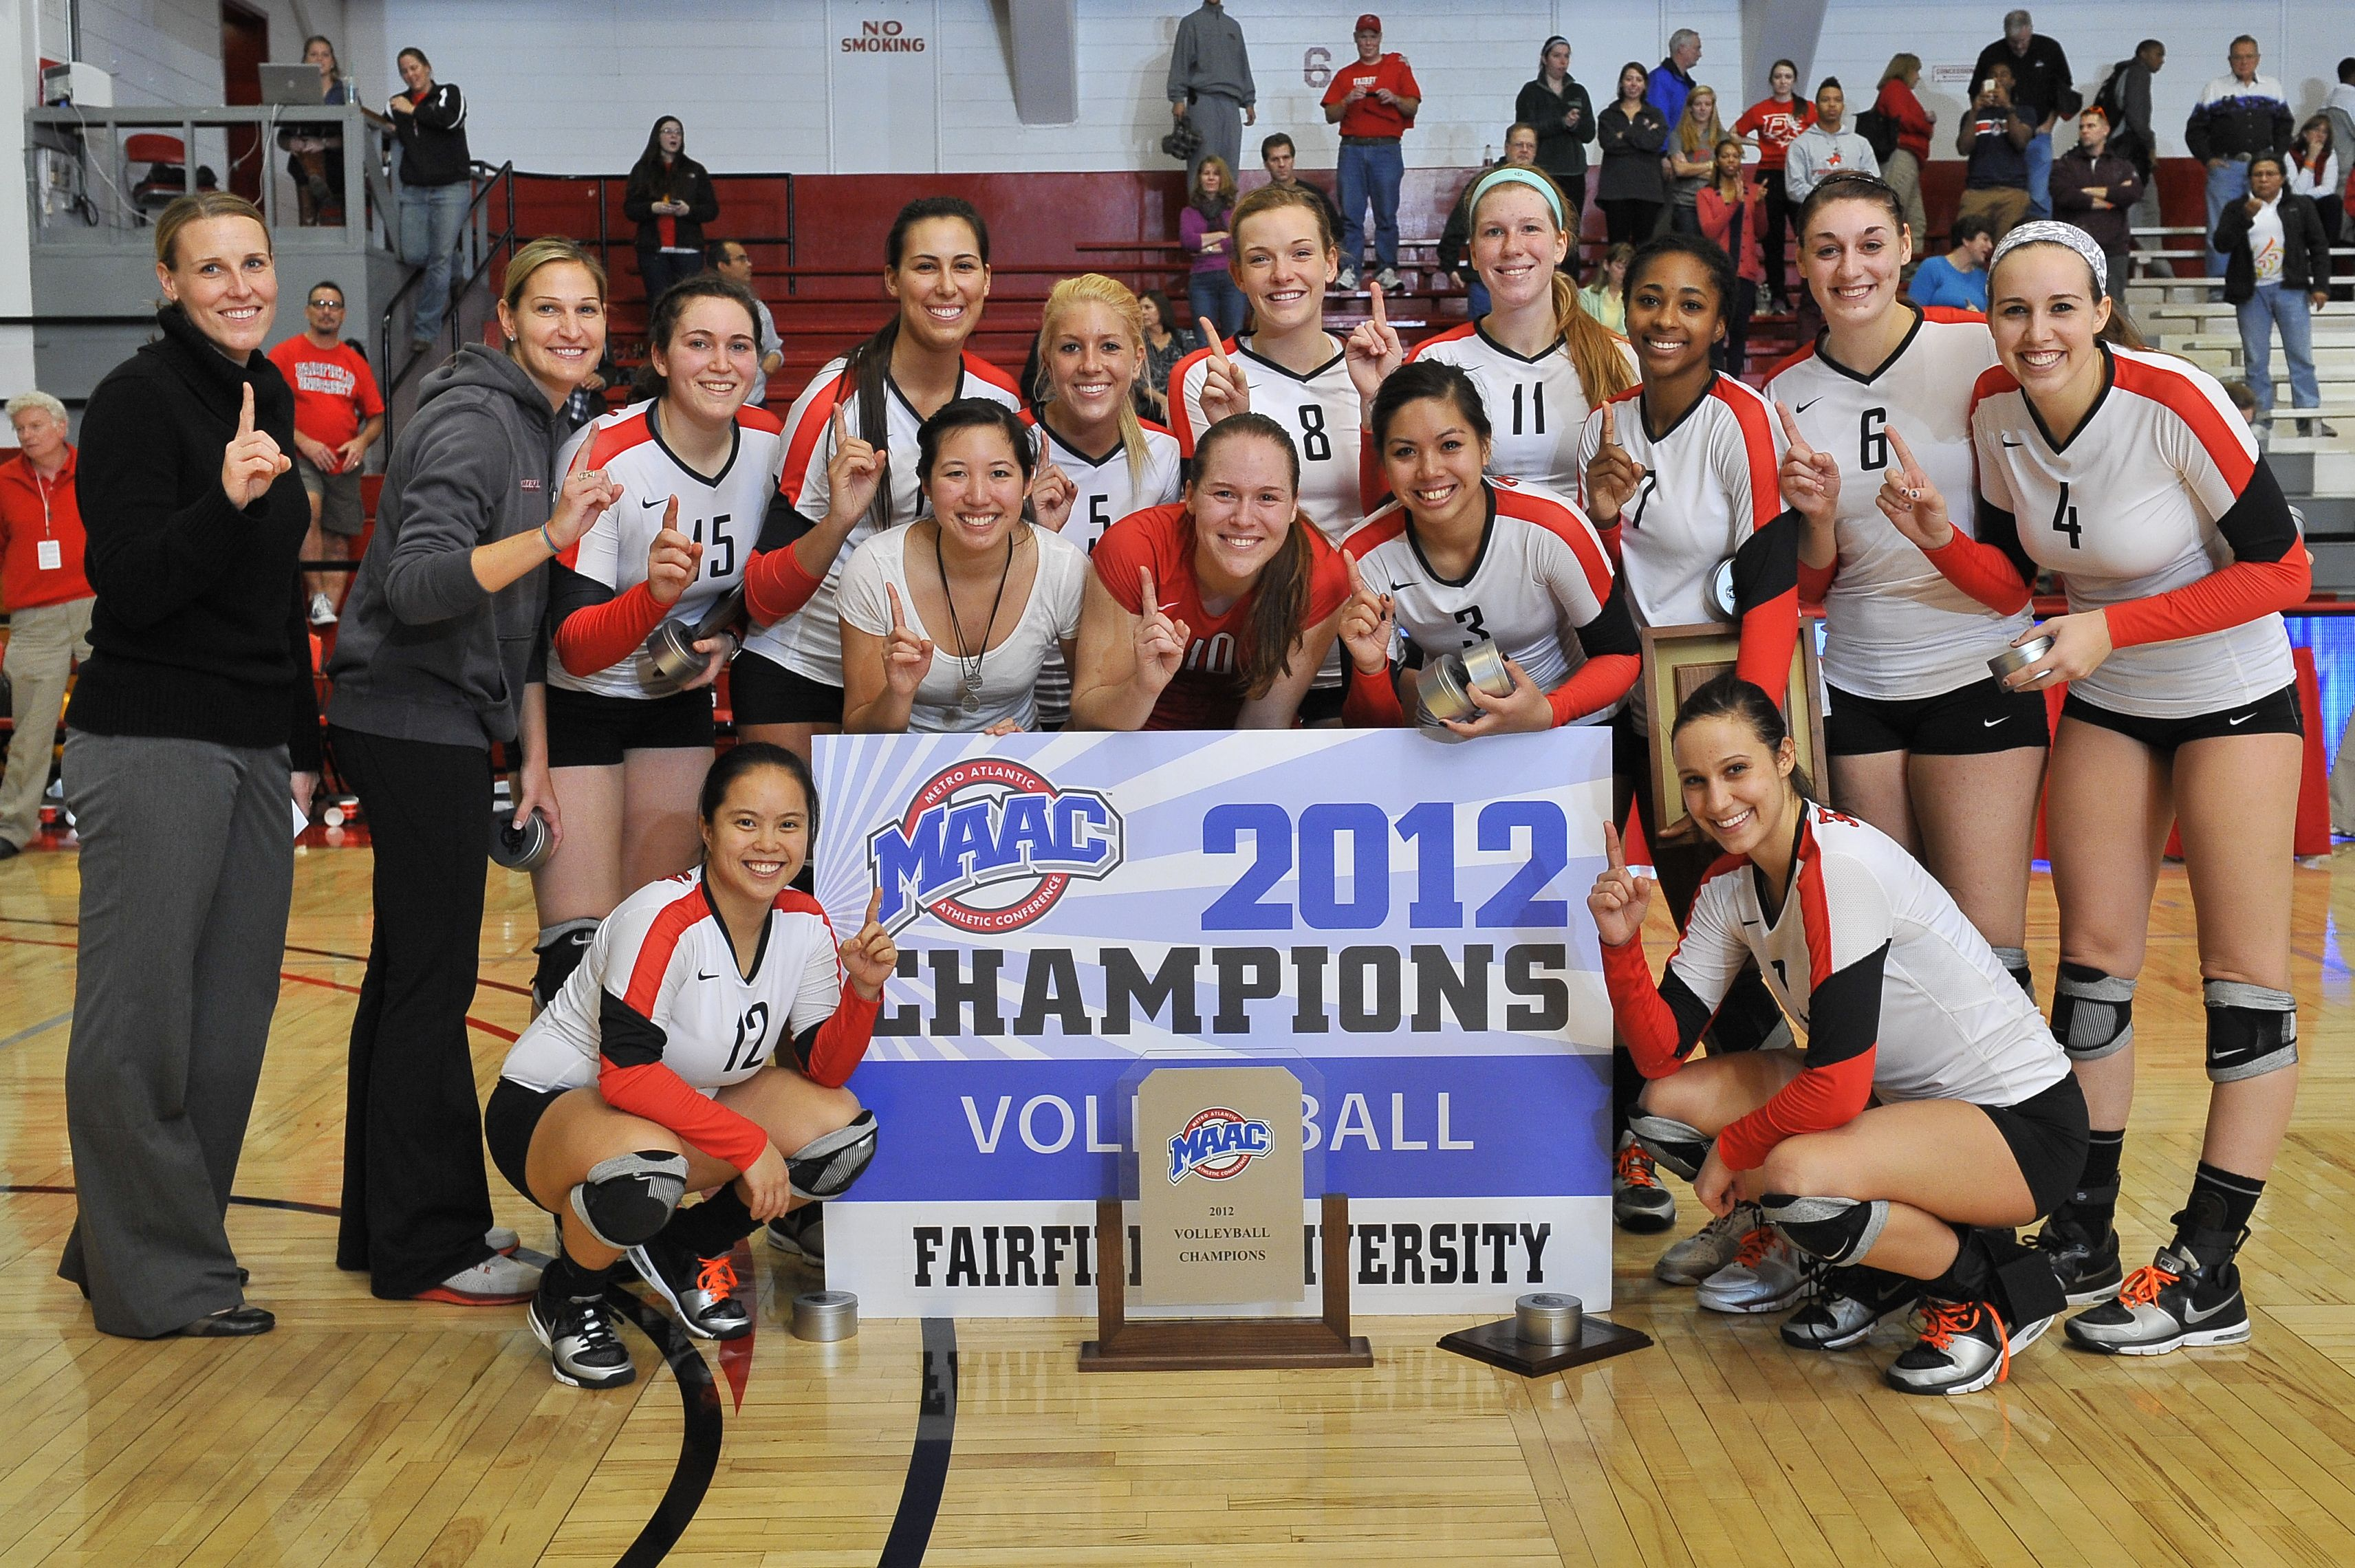 Congrats To Our Woman S Volleyball Team Winning The 2012 Maac Championship Women Volleyball Volleyball Team Athlete